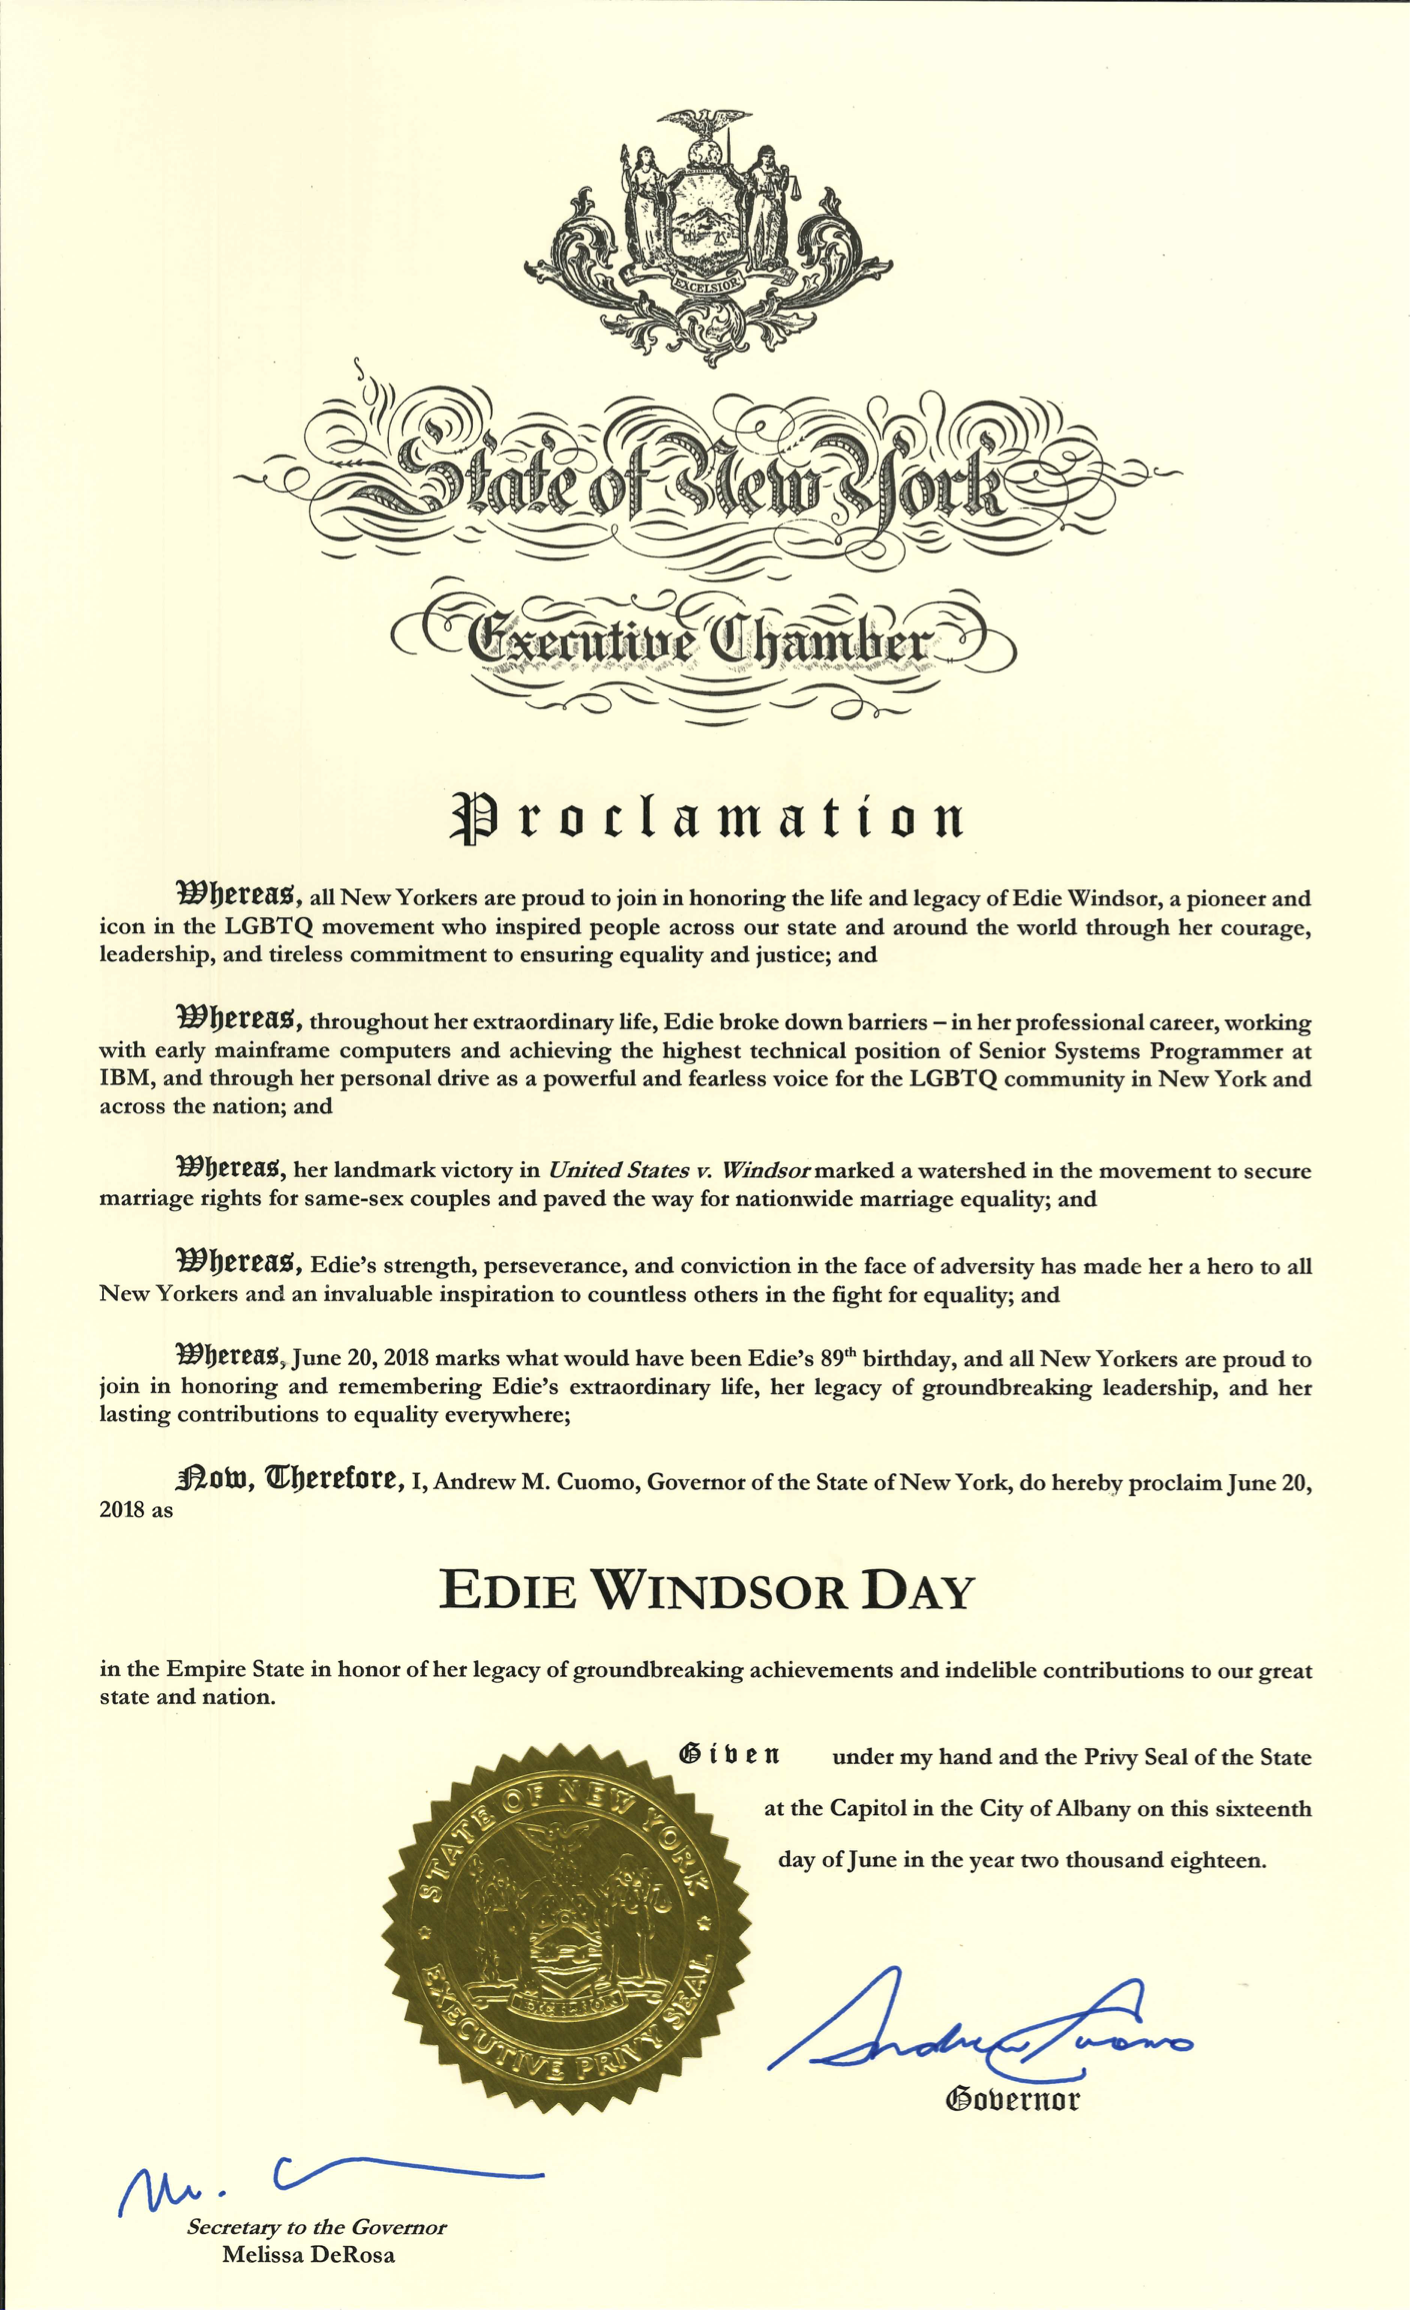 Edie Windsor Day Proclamation 2018